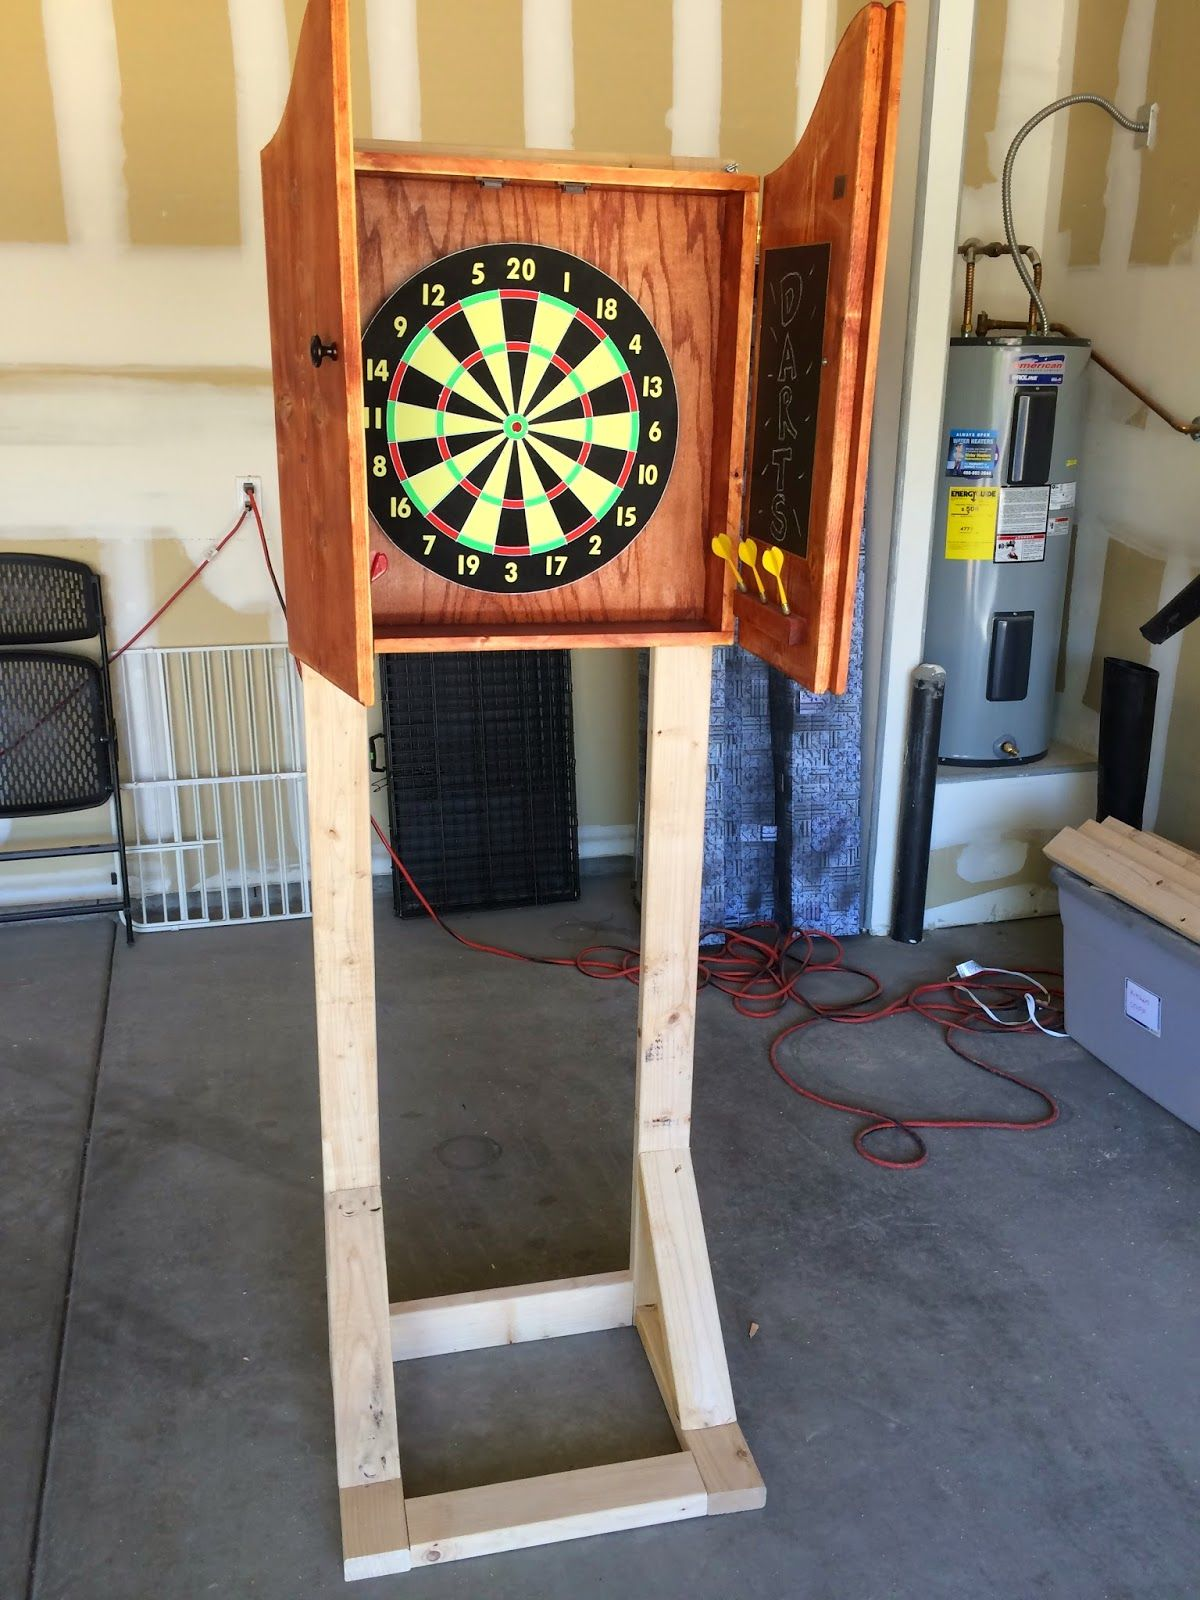 Over A Year Ago I Made Very Cool Dartboard Cabinet When Moved From New York To Arizona Wound Up Giving This Away But